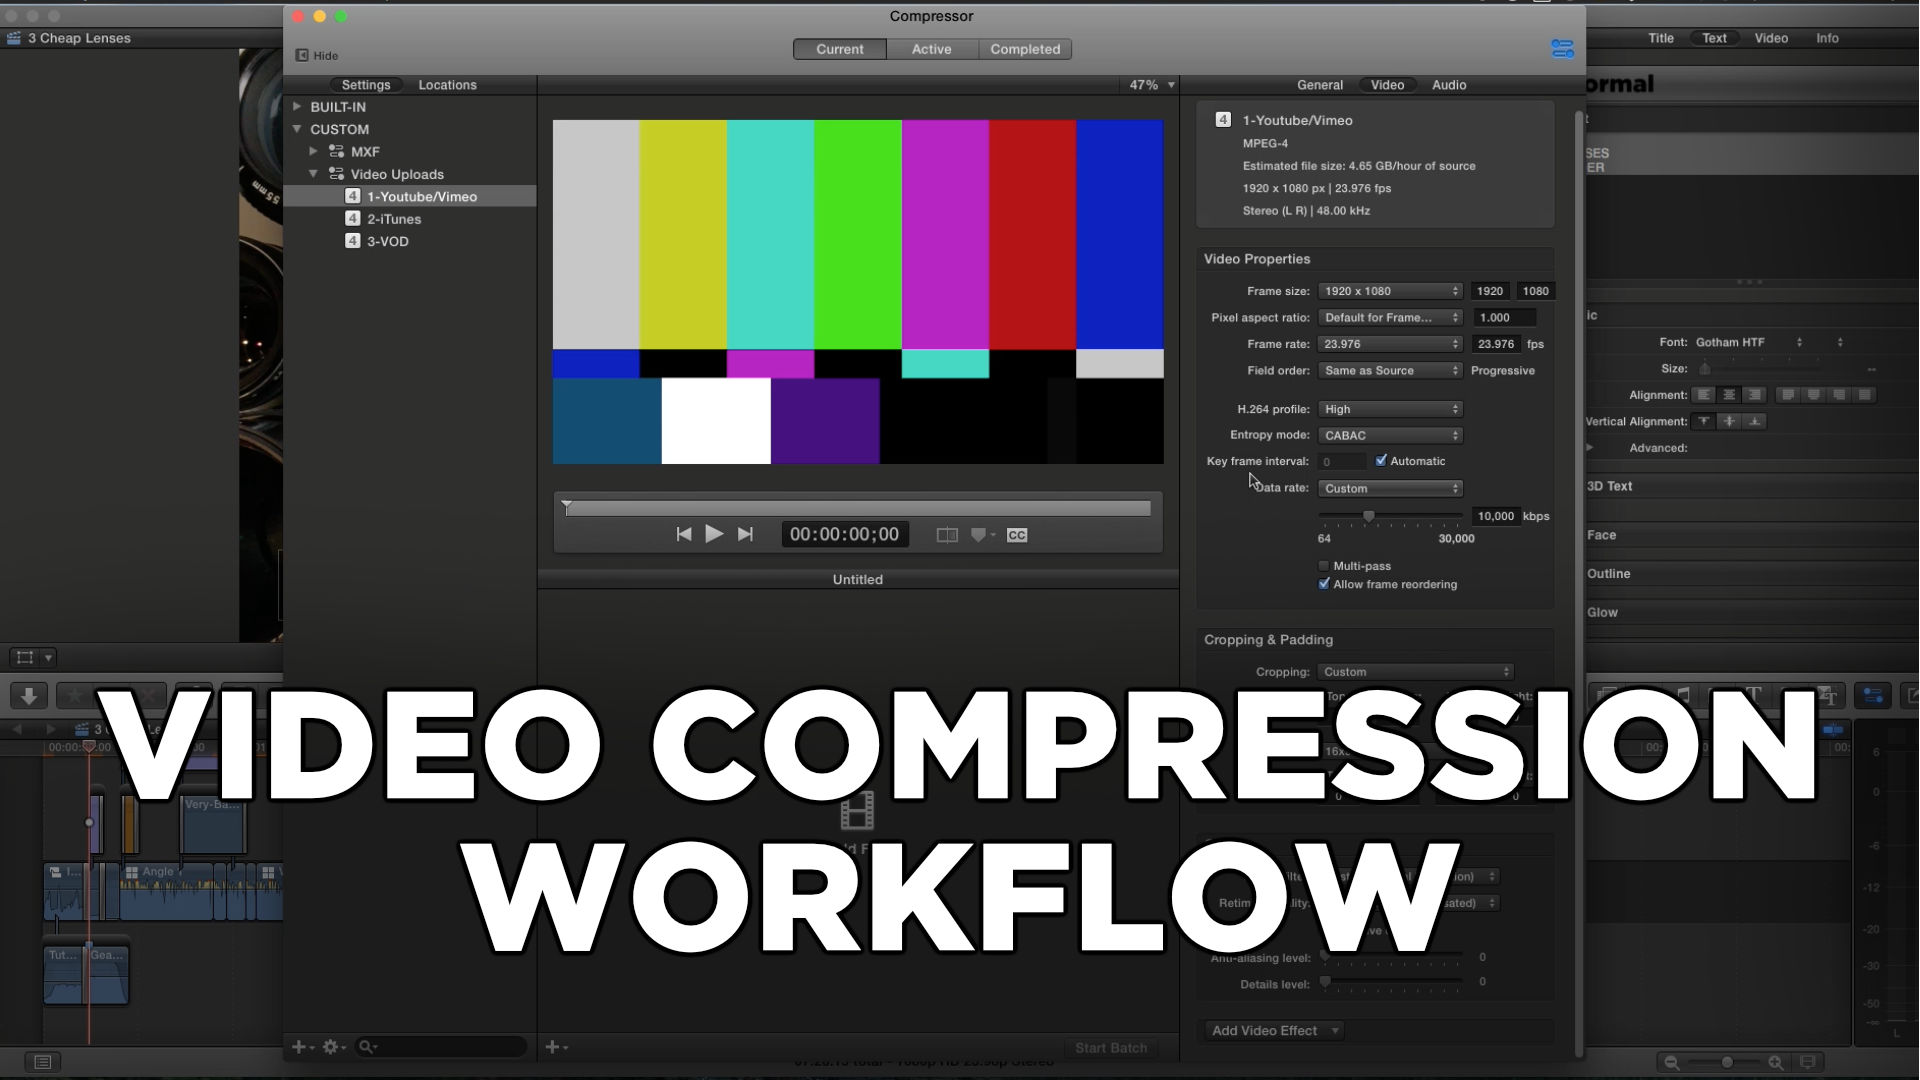 My Video Compression Workflow (FCPX + Compressor)